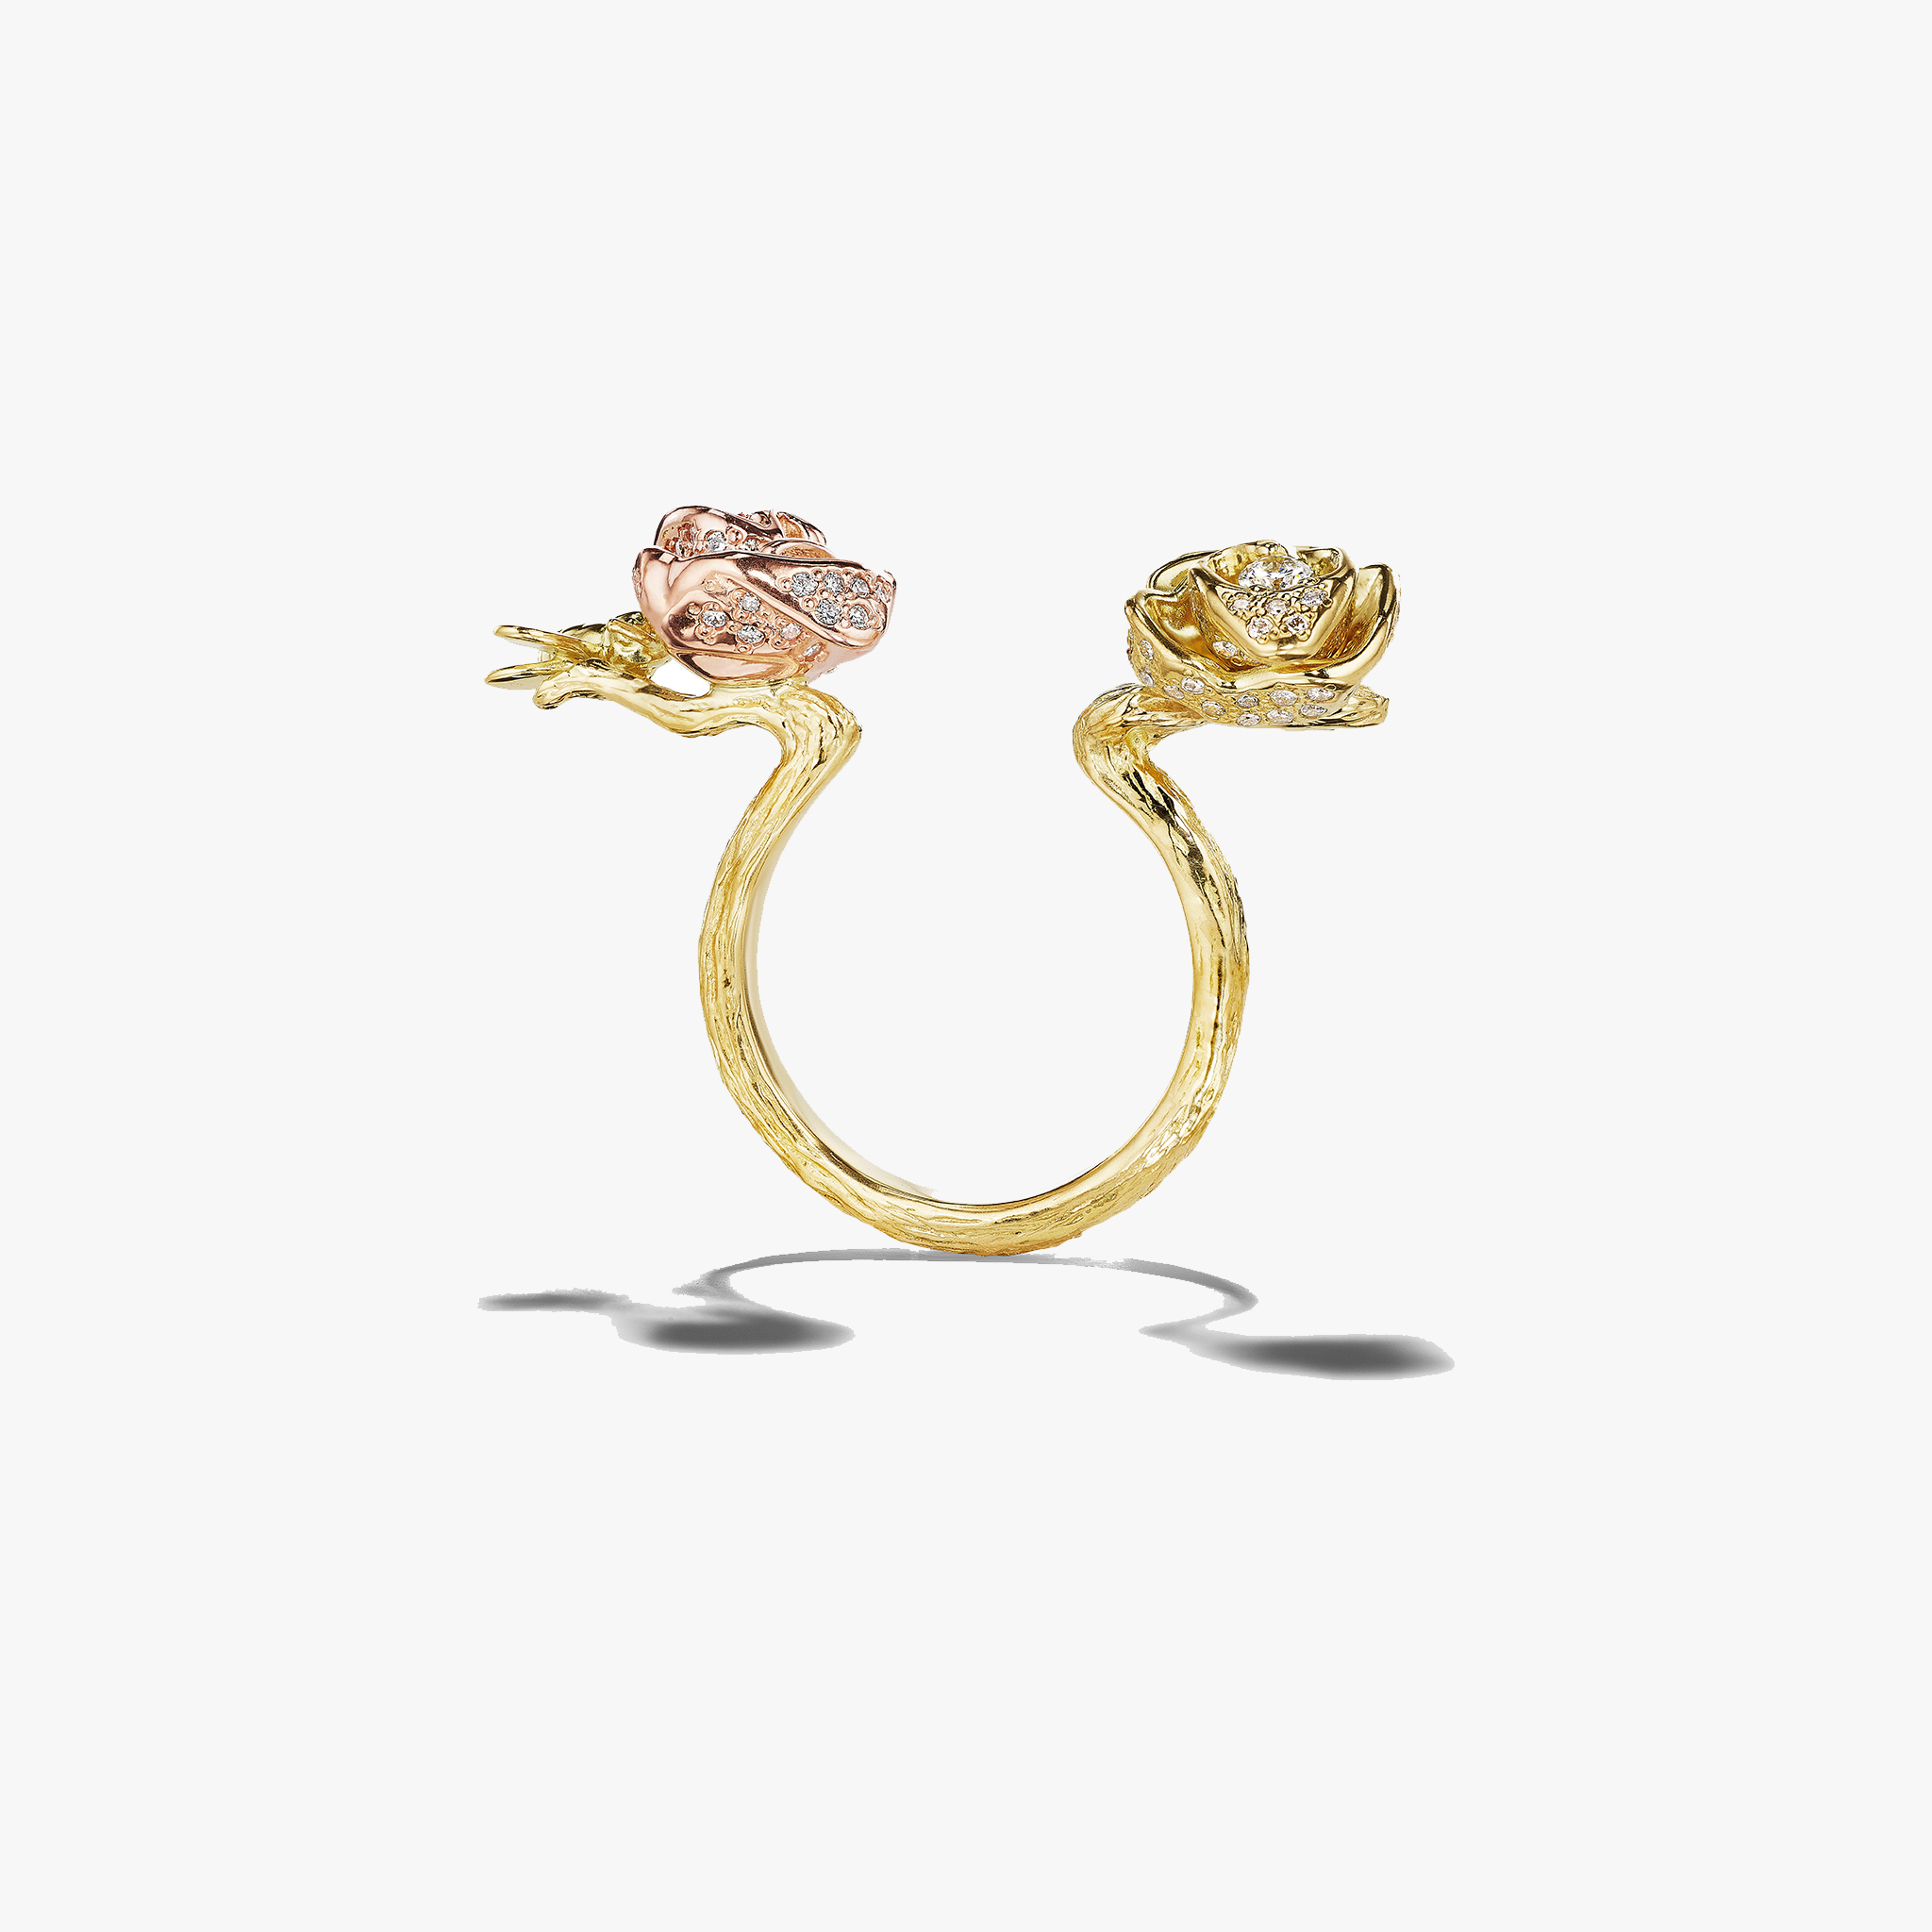 Wonderland-Bee-and-Rose-In-Between-Ring_18k Yellow/Rose Gold